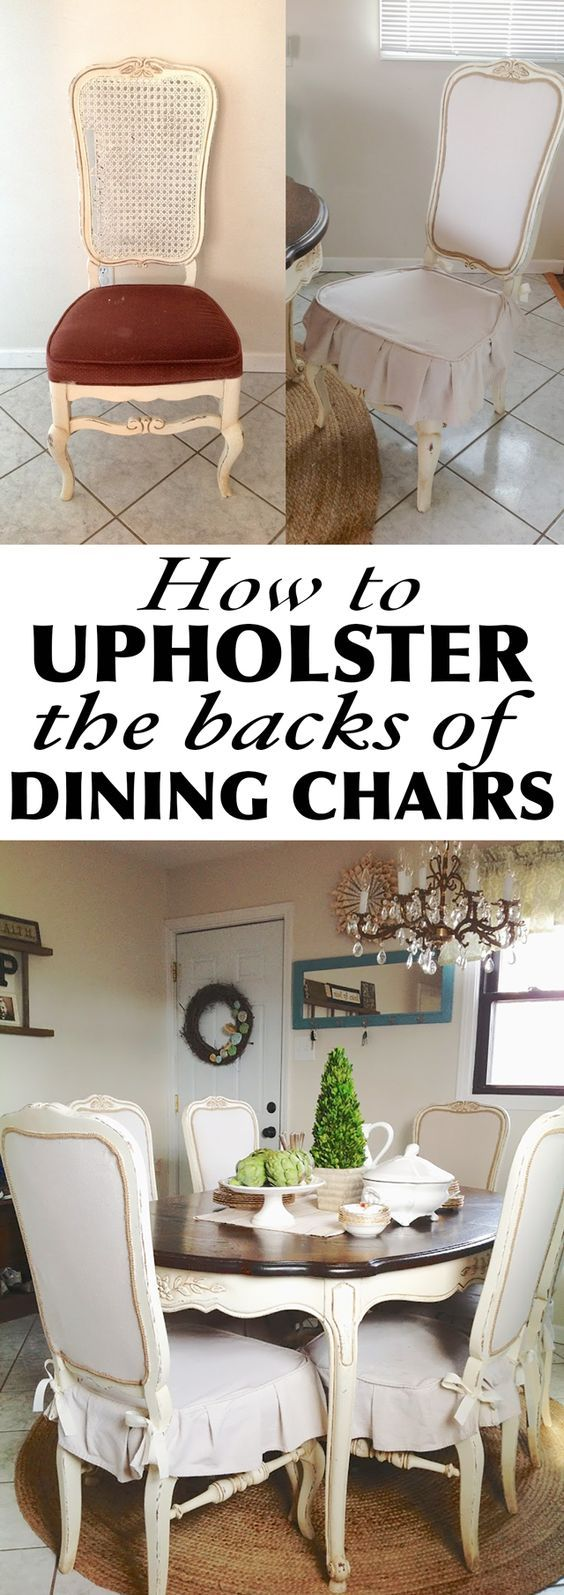 How to Upholster the Back of Dining Chairs is part of Dining chair makeover - How to upholster the back of a dining chair using batting, drop cloth an gimp trim  Great solution to damaged cane back chairs